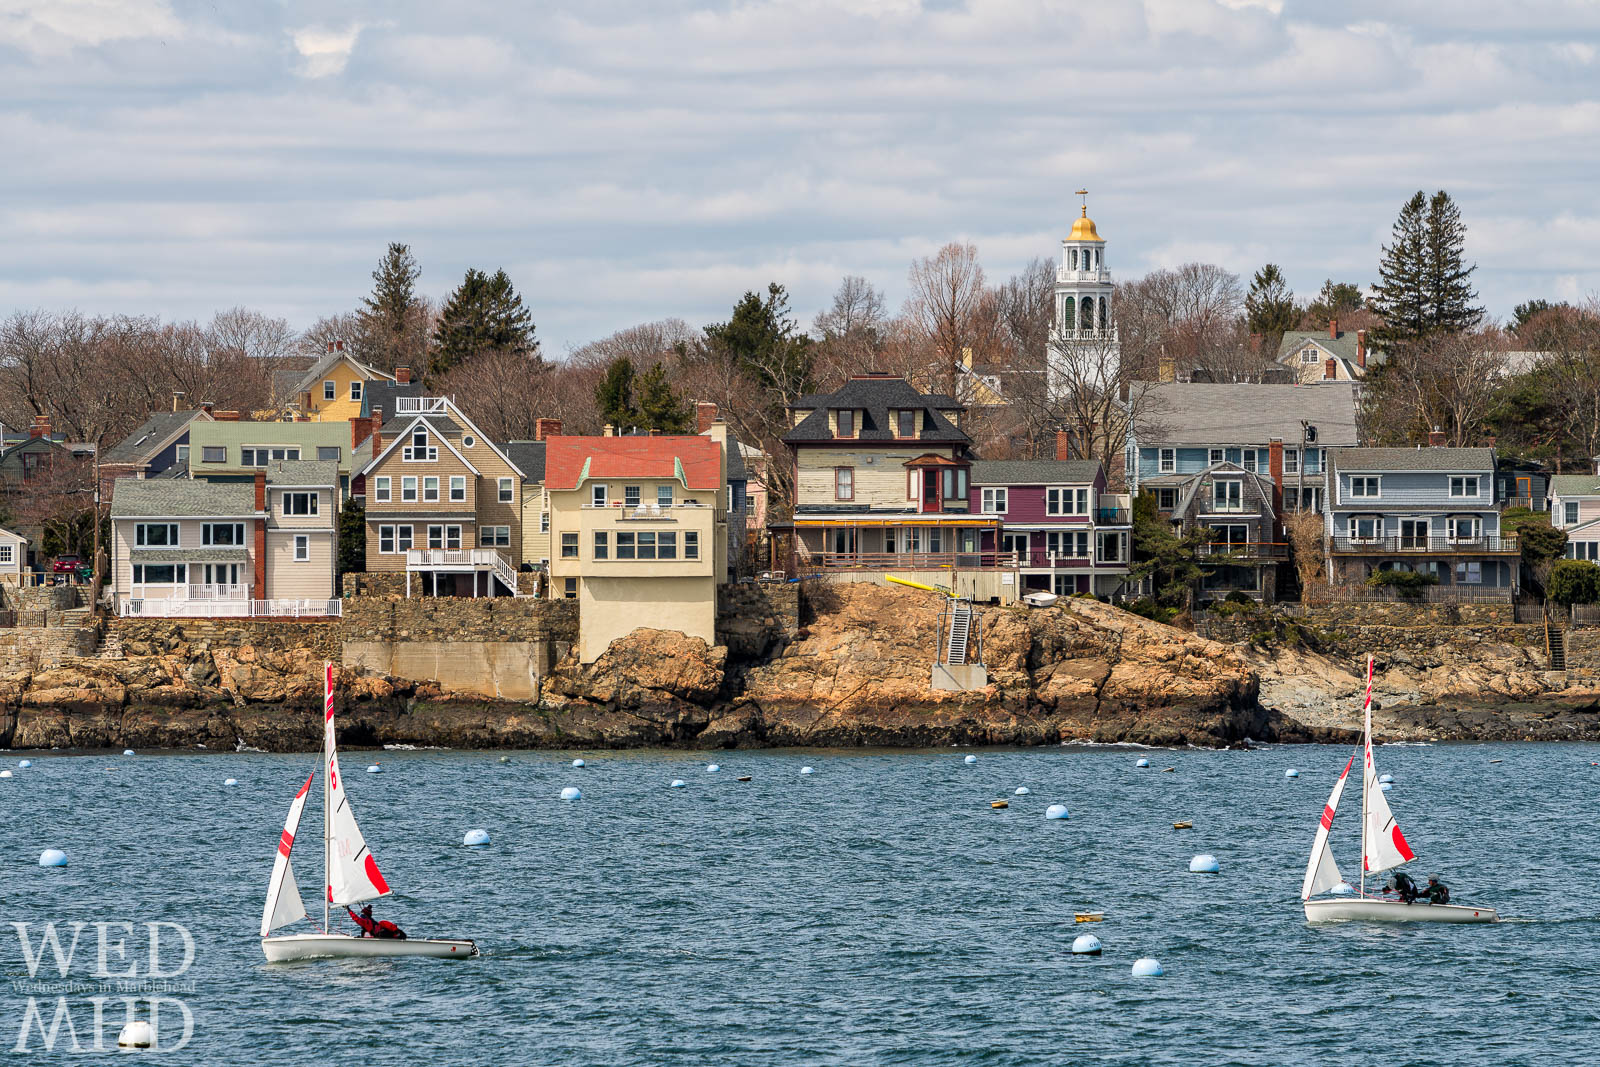 Frostbite sailing takes place each winter in Marblehead Harbor. Here two boats pass in front of the Old North Church